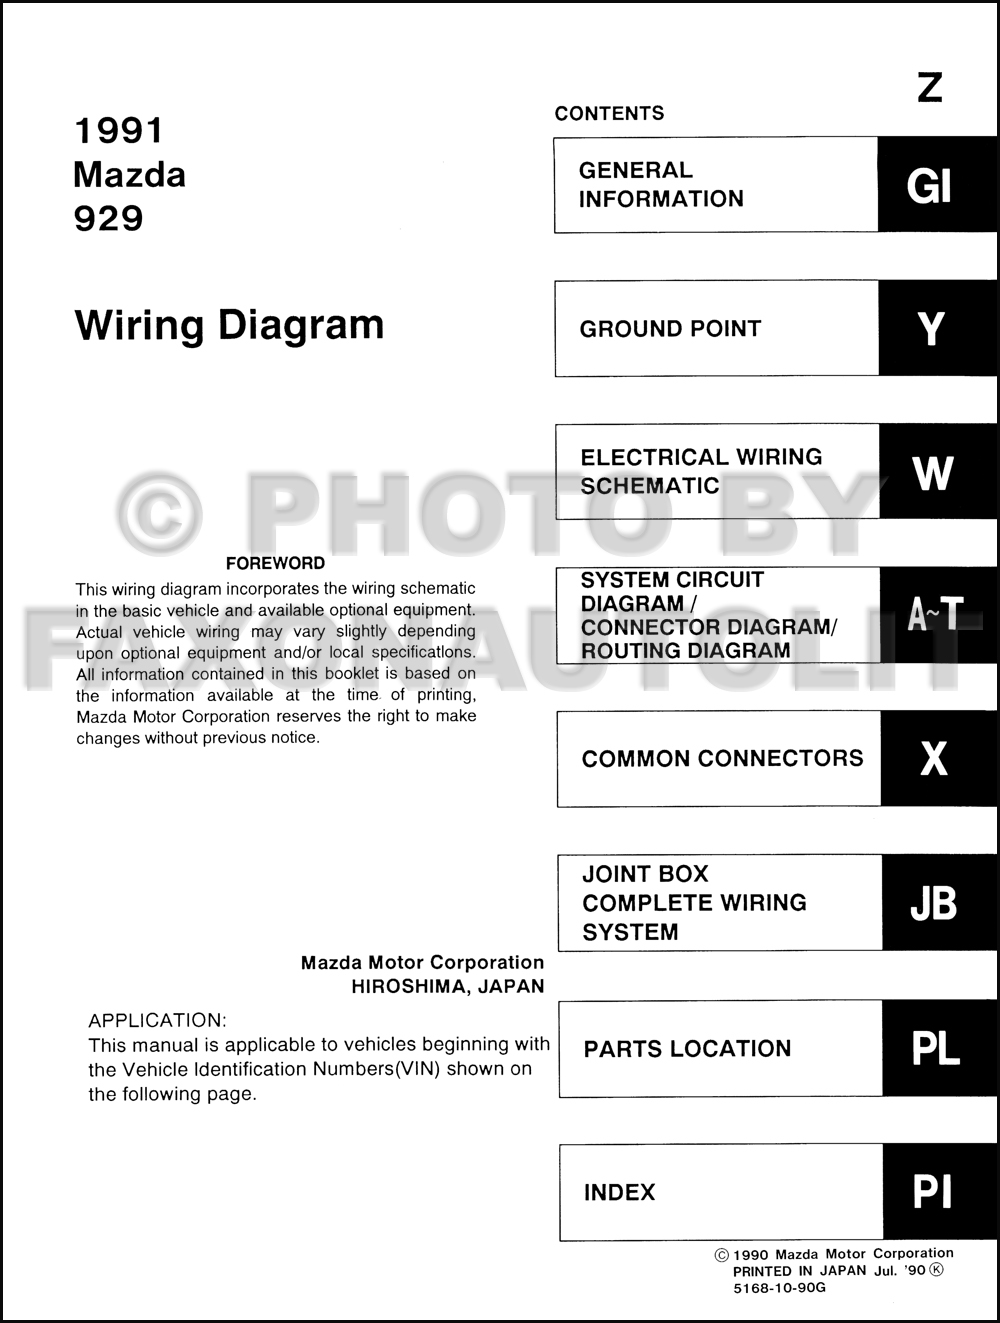 Mazda 929 Wiring Diagram Reinvent Your 2005 3 Engine 1991 Manual Original Rh Faxonautoliterature Com Miata Tribute Diagrams